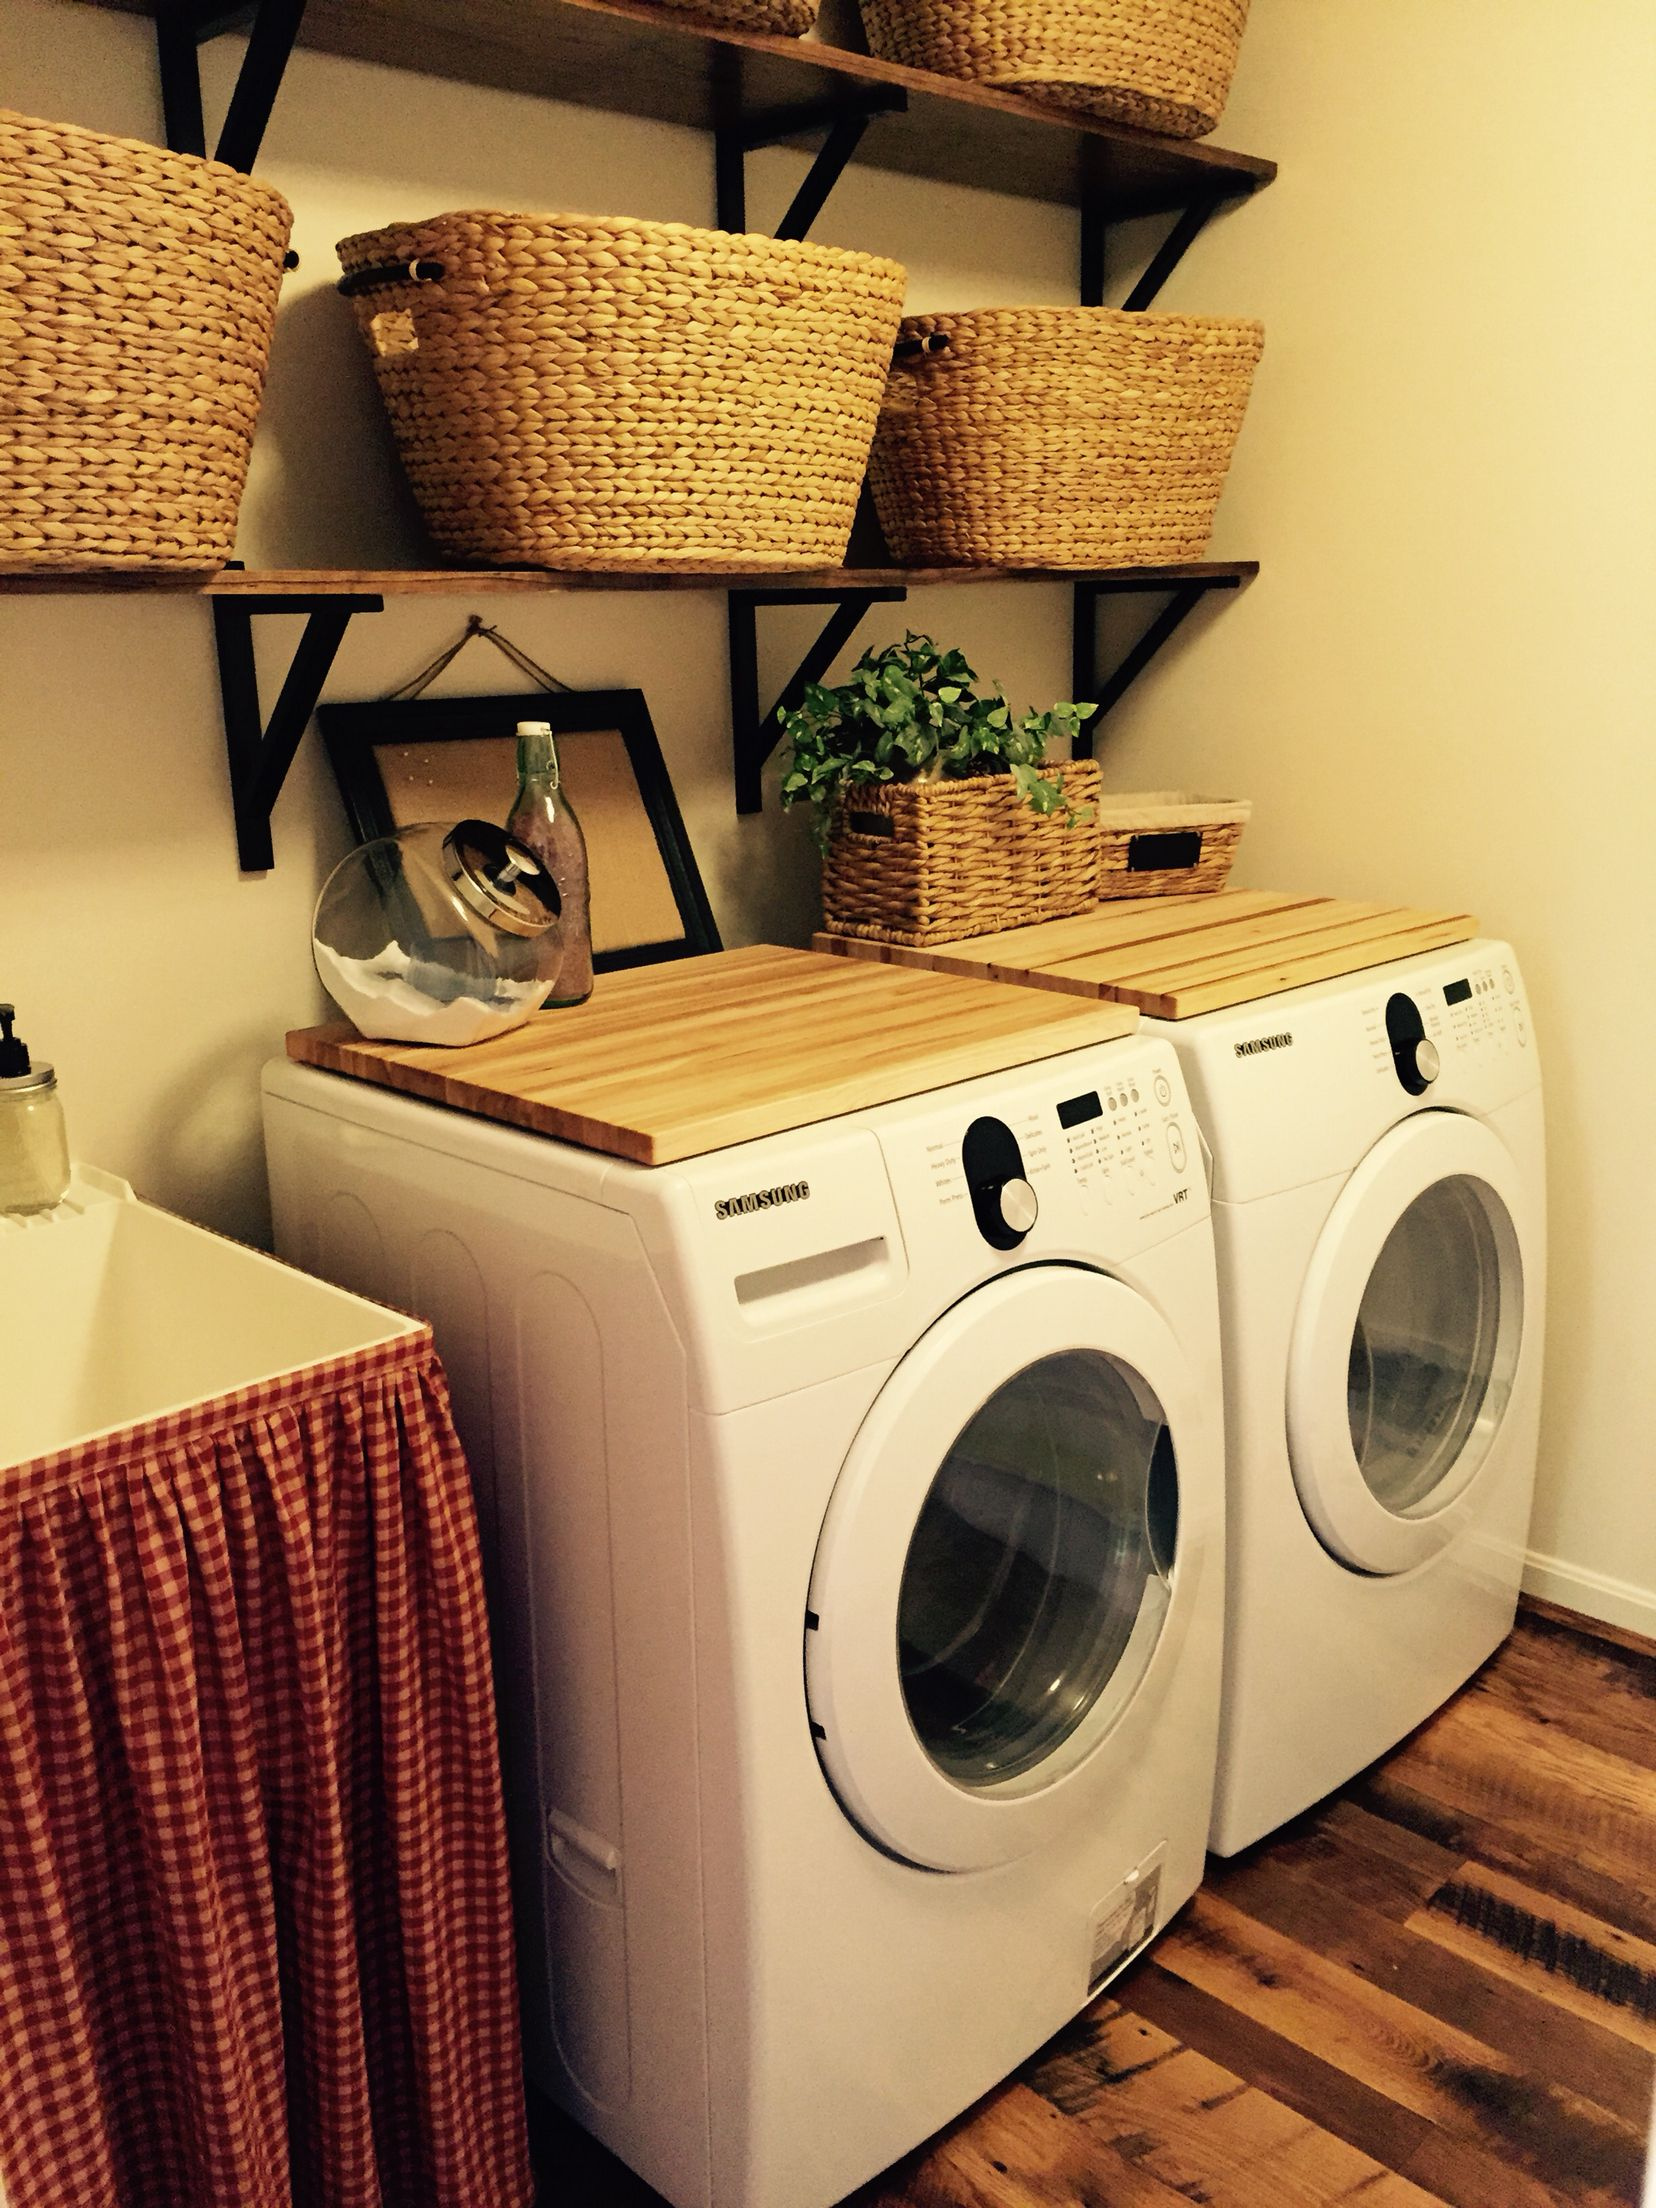 Small Laundry Room Decor To Hide Drain And Plugs Behind